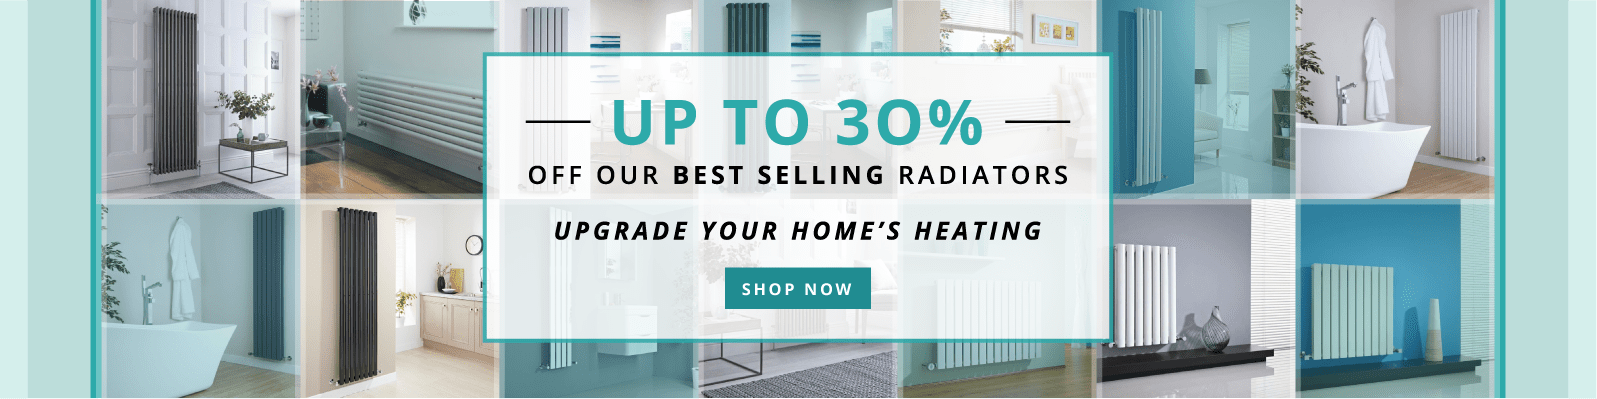 Up to 30% off Our Best-Selling Radiators Upgrade your Home's Heating